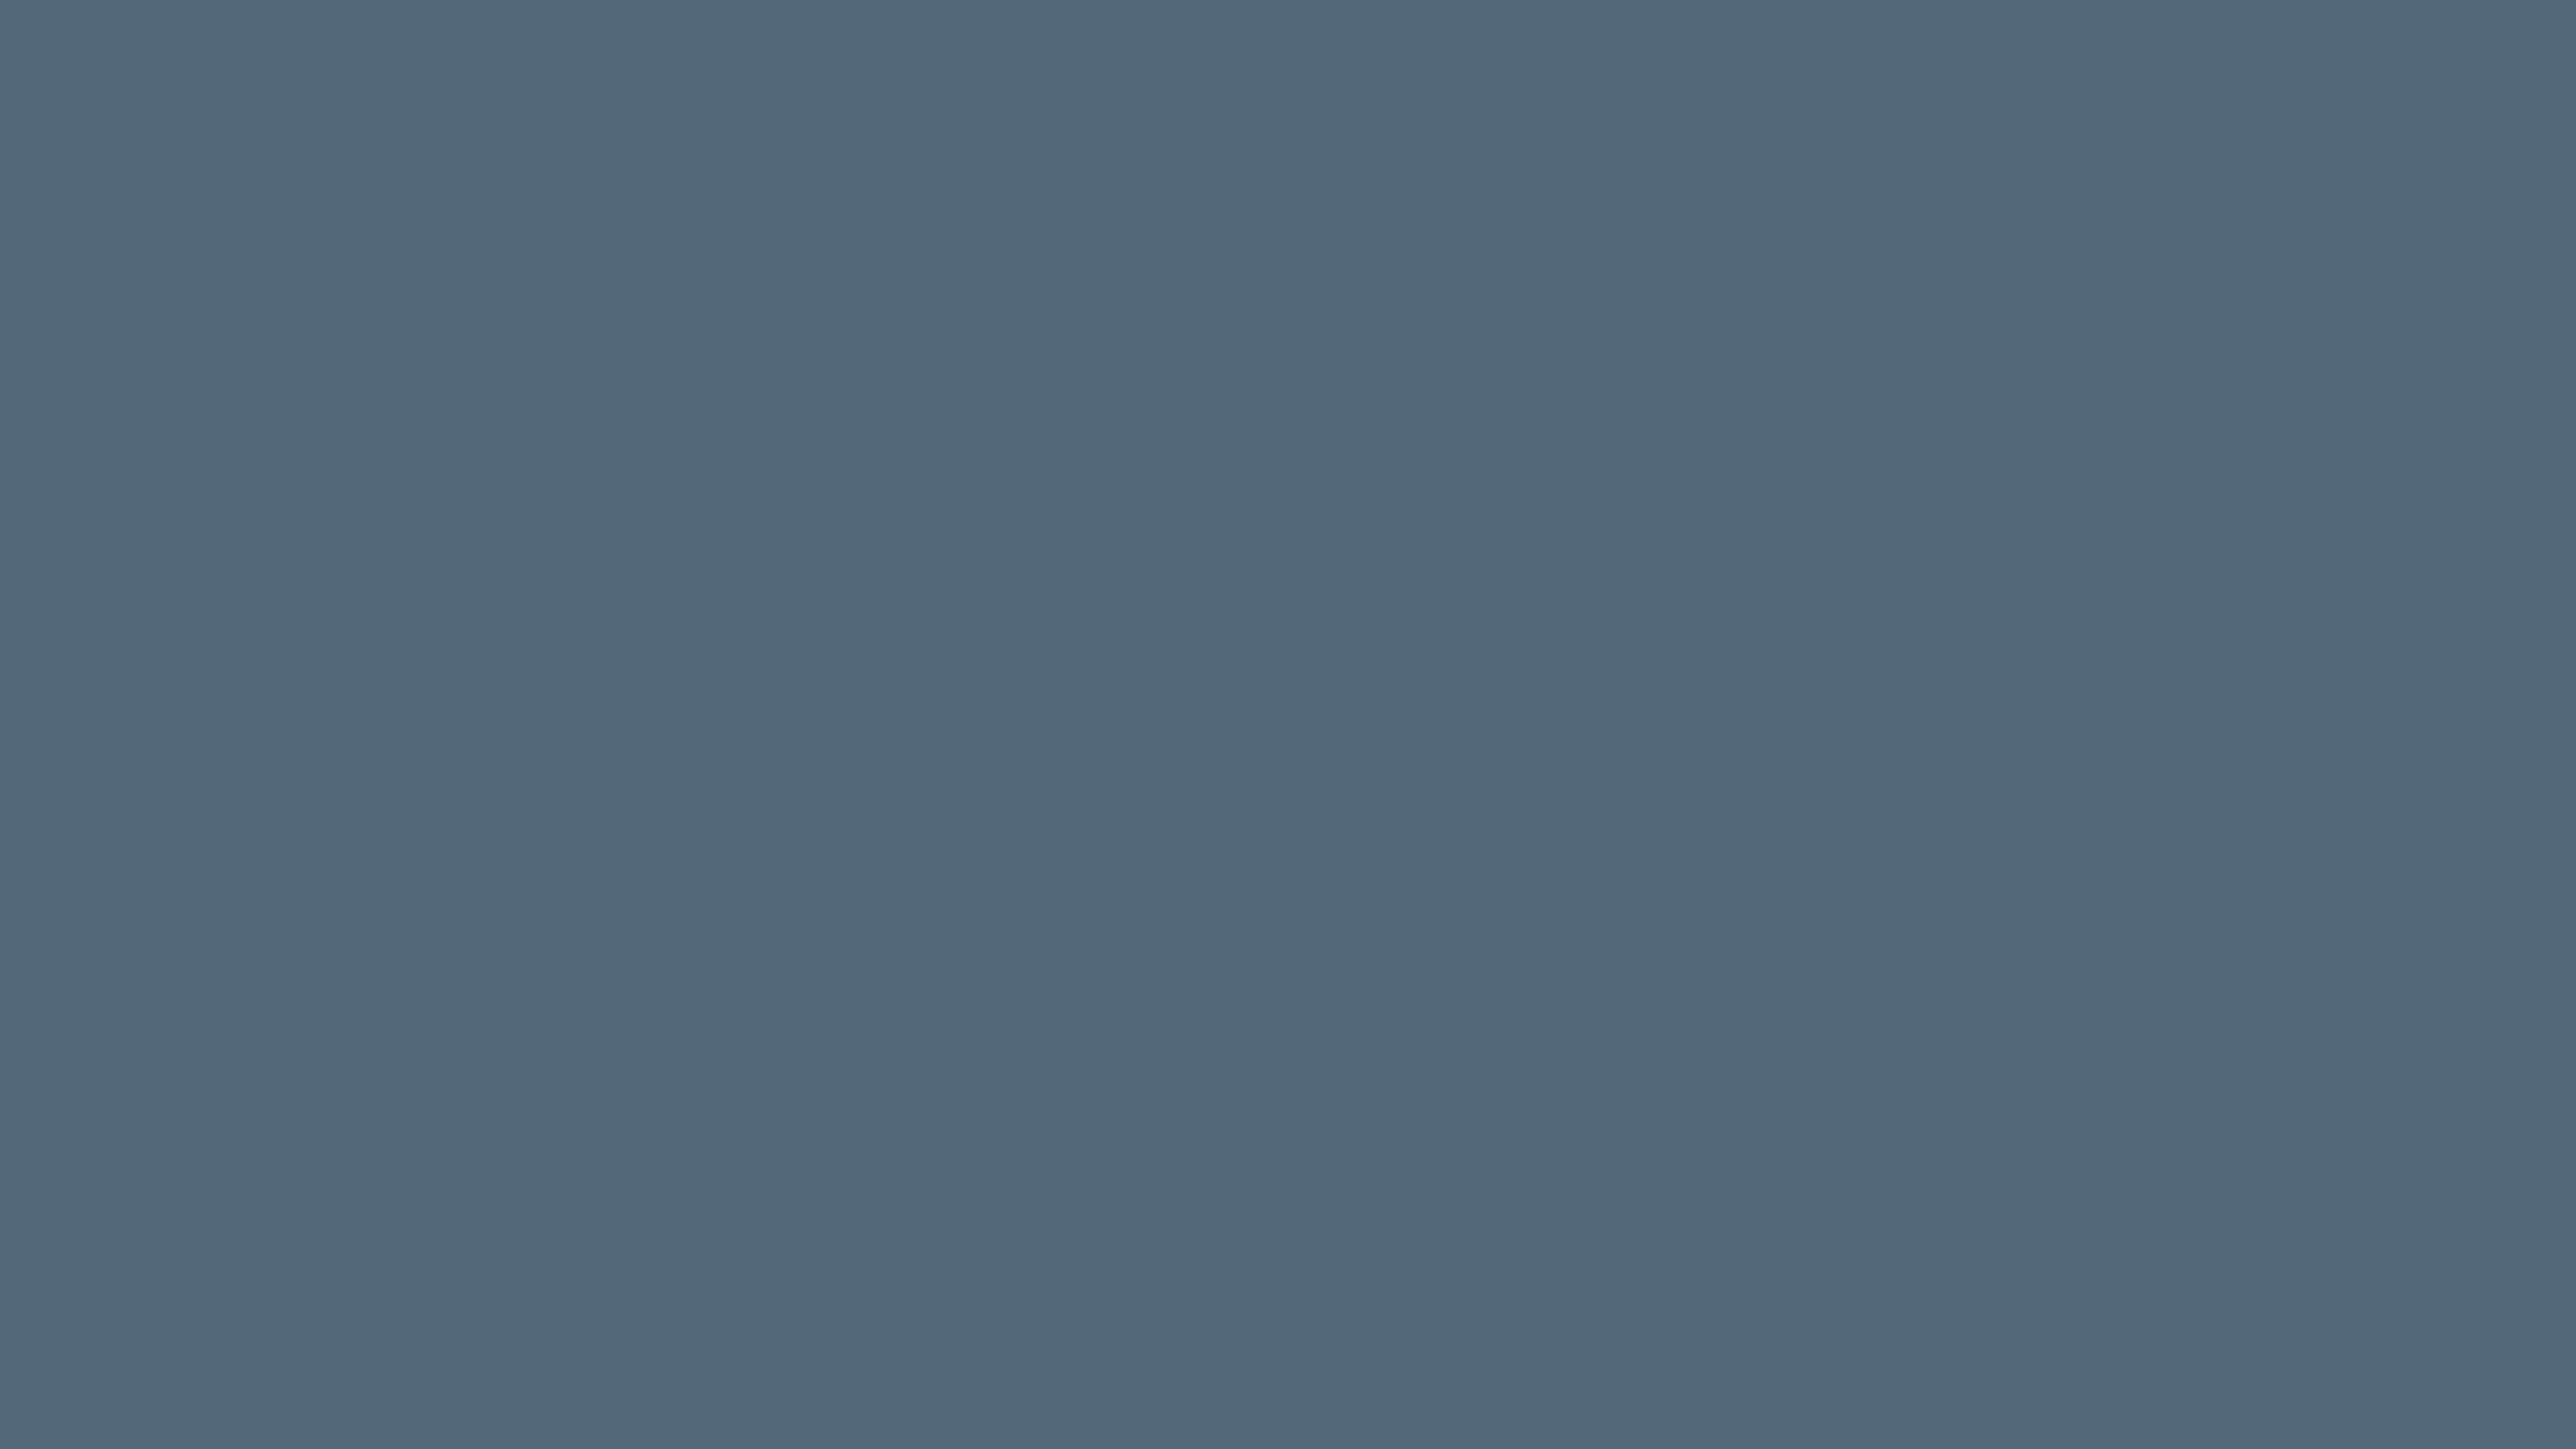 5120x2880 Dark Electric Blue Solid Color Background